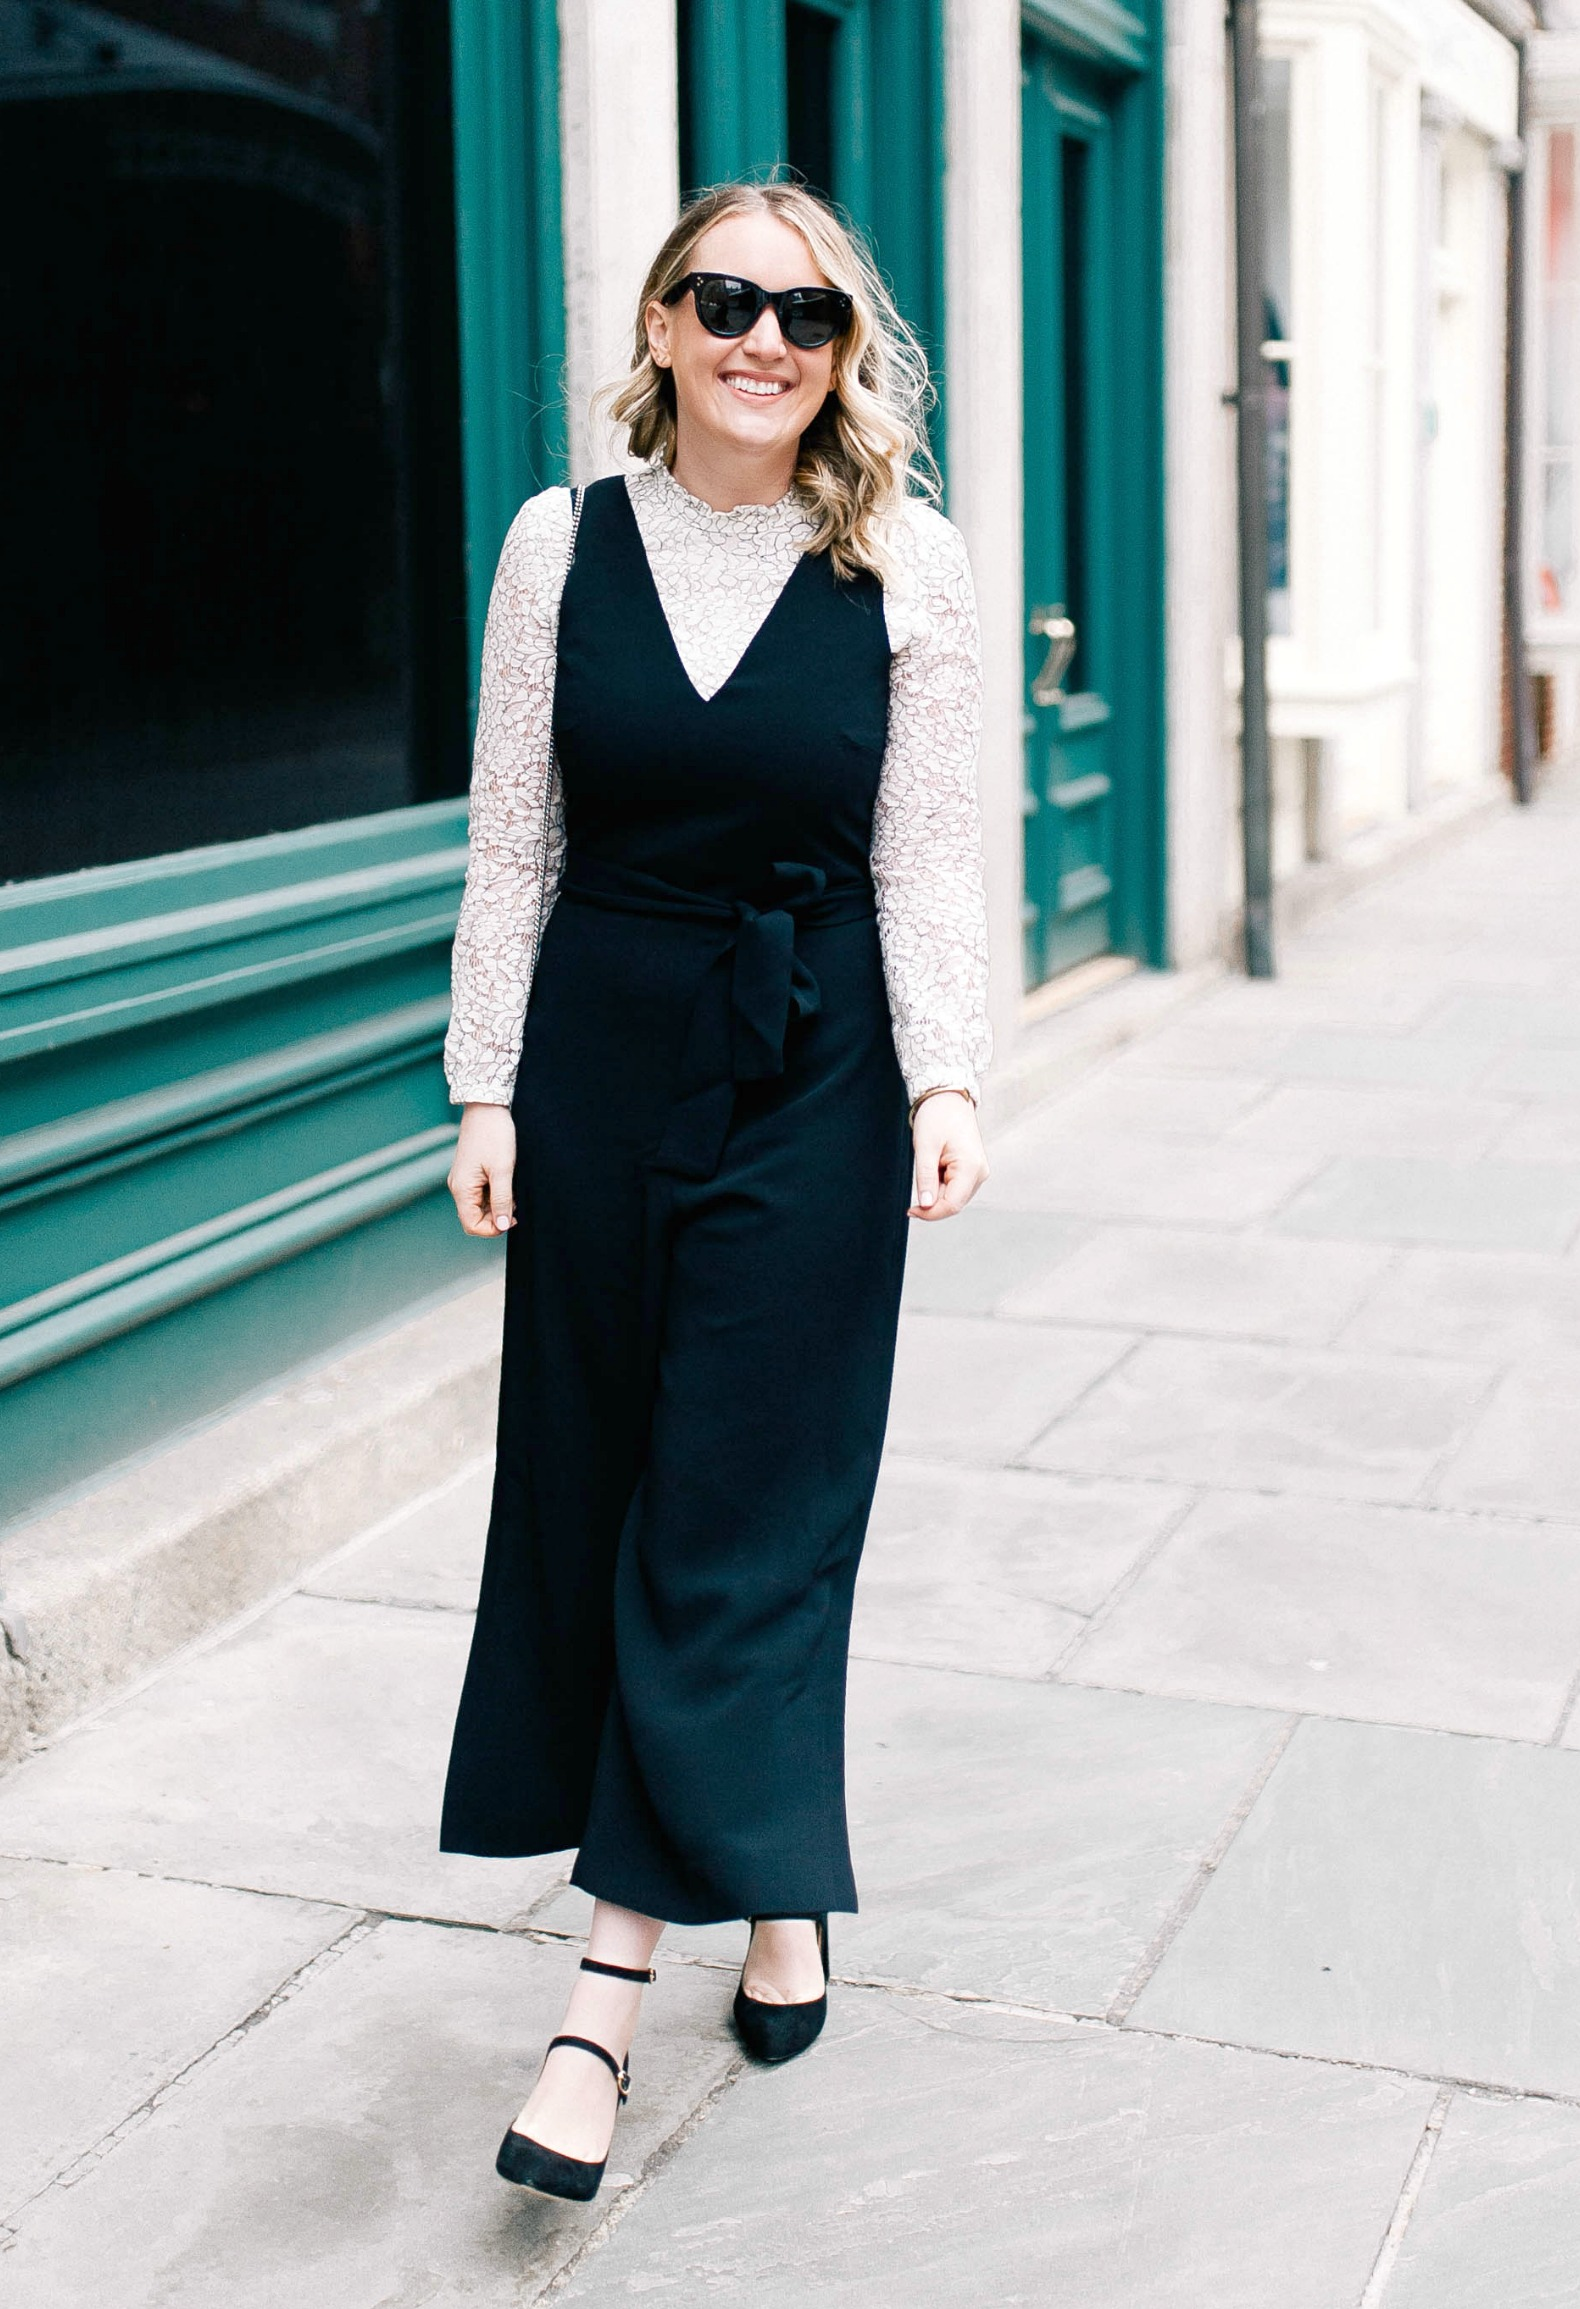 Club Monaco Jumpsuit on Meghan Donovan of wit & whimsy